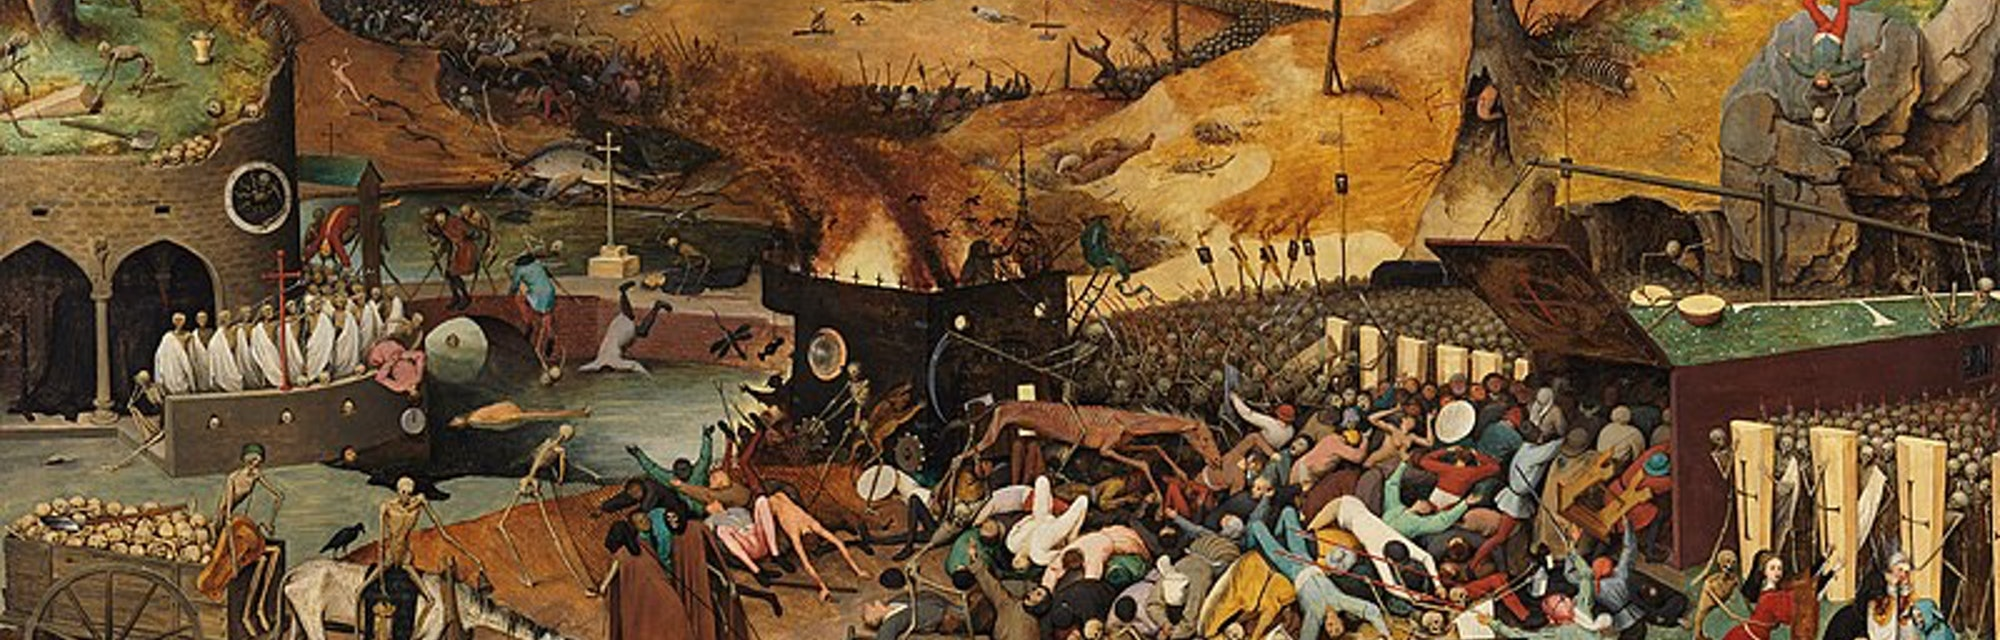 A painting depicting the Black Death.